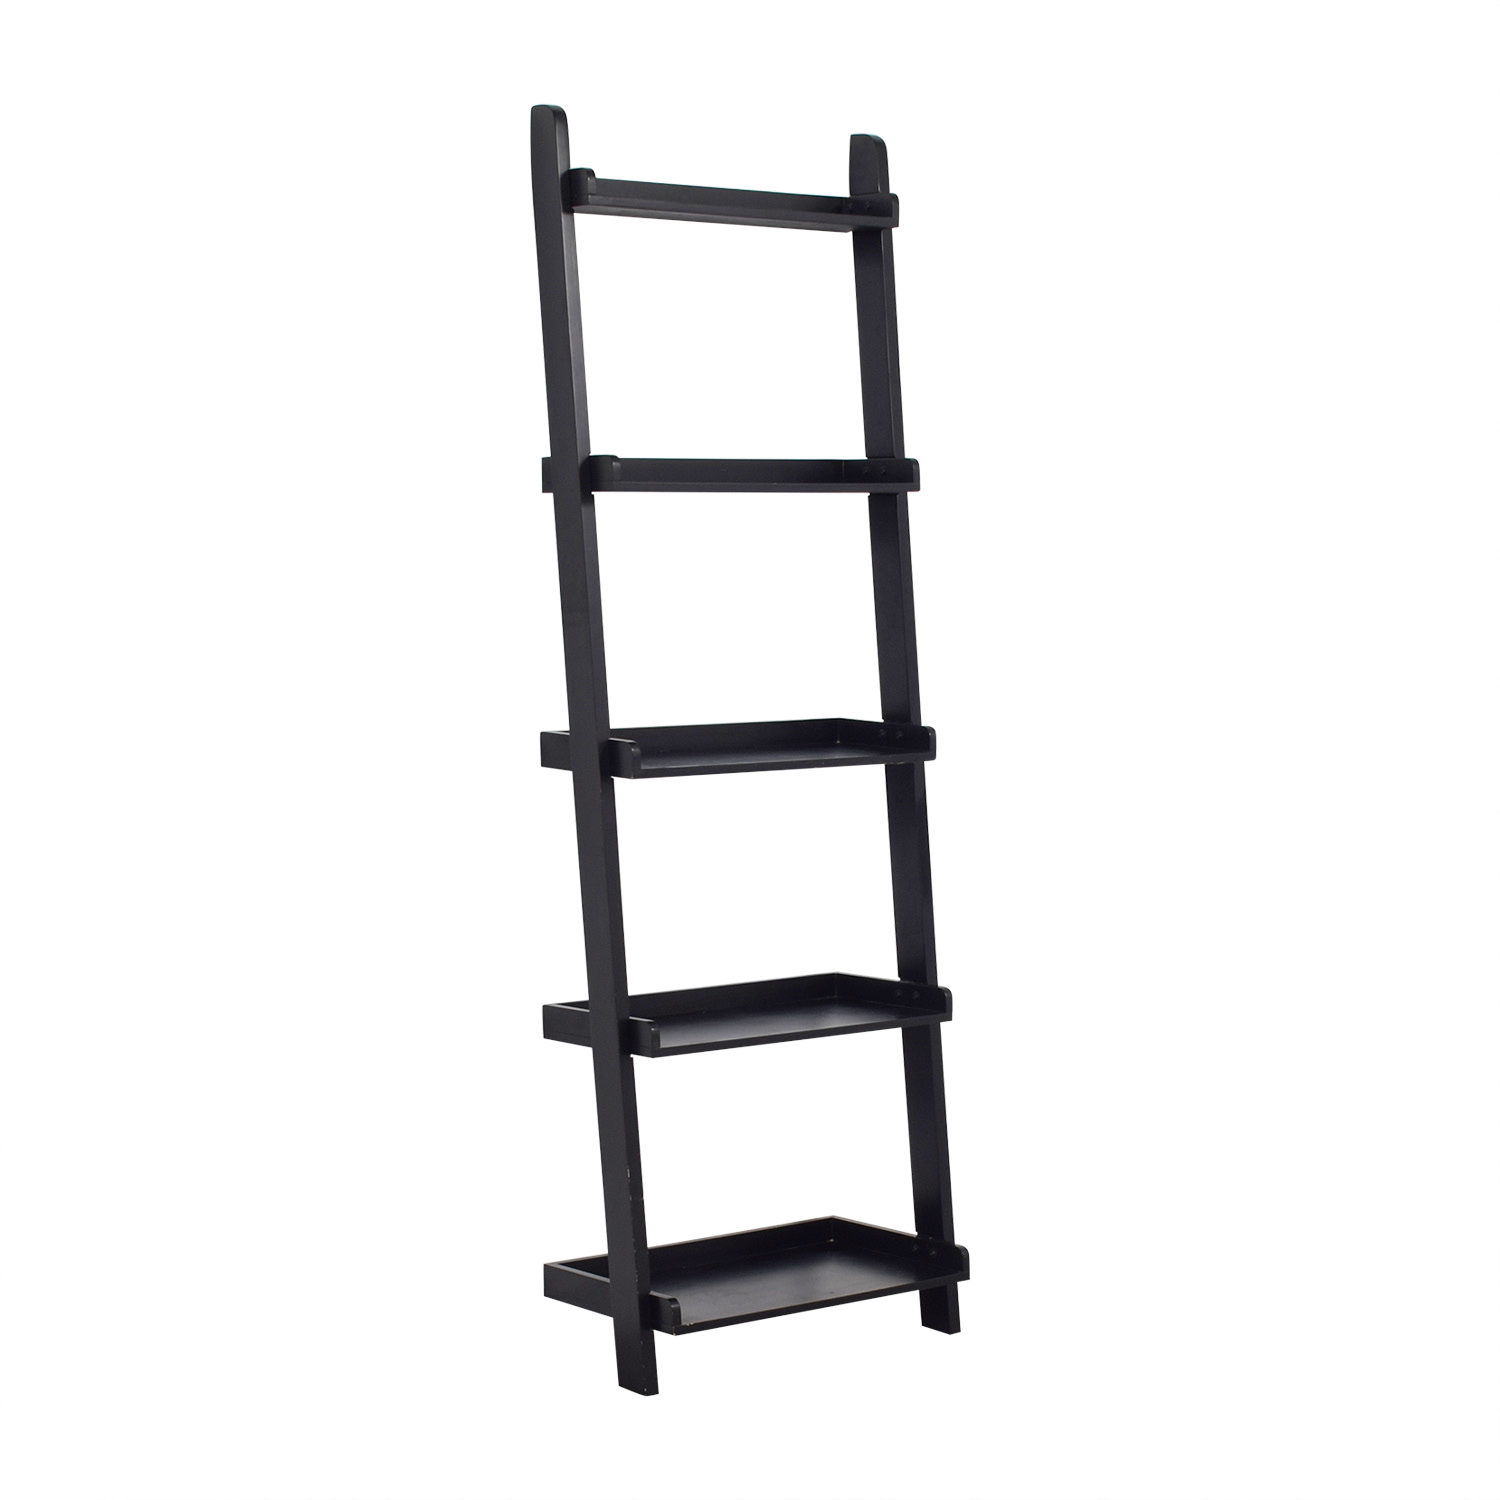 Crate and Barrel Crate & Barrel Black Leaning Bookcase dimensions